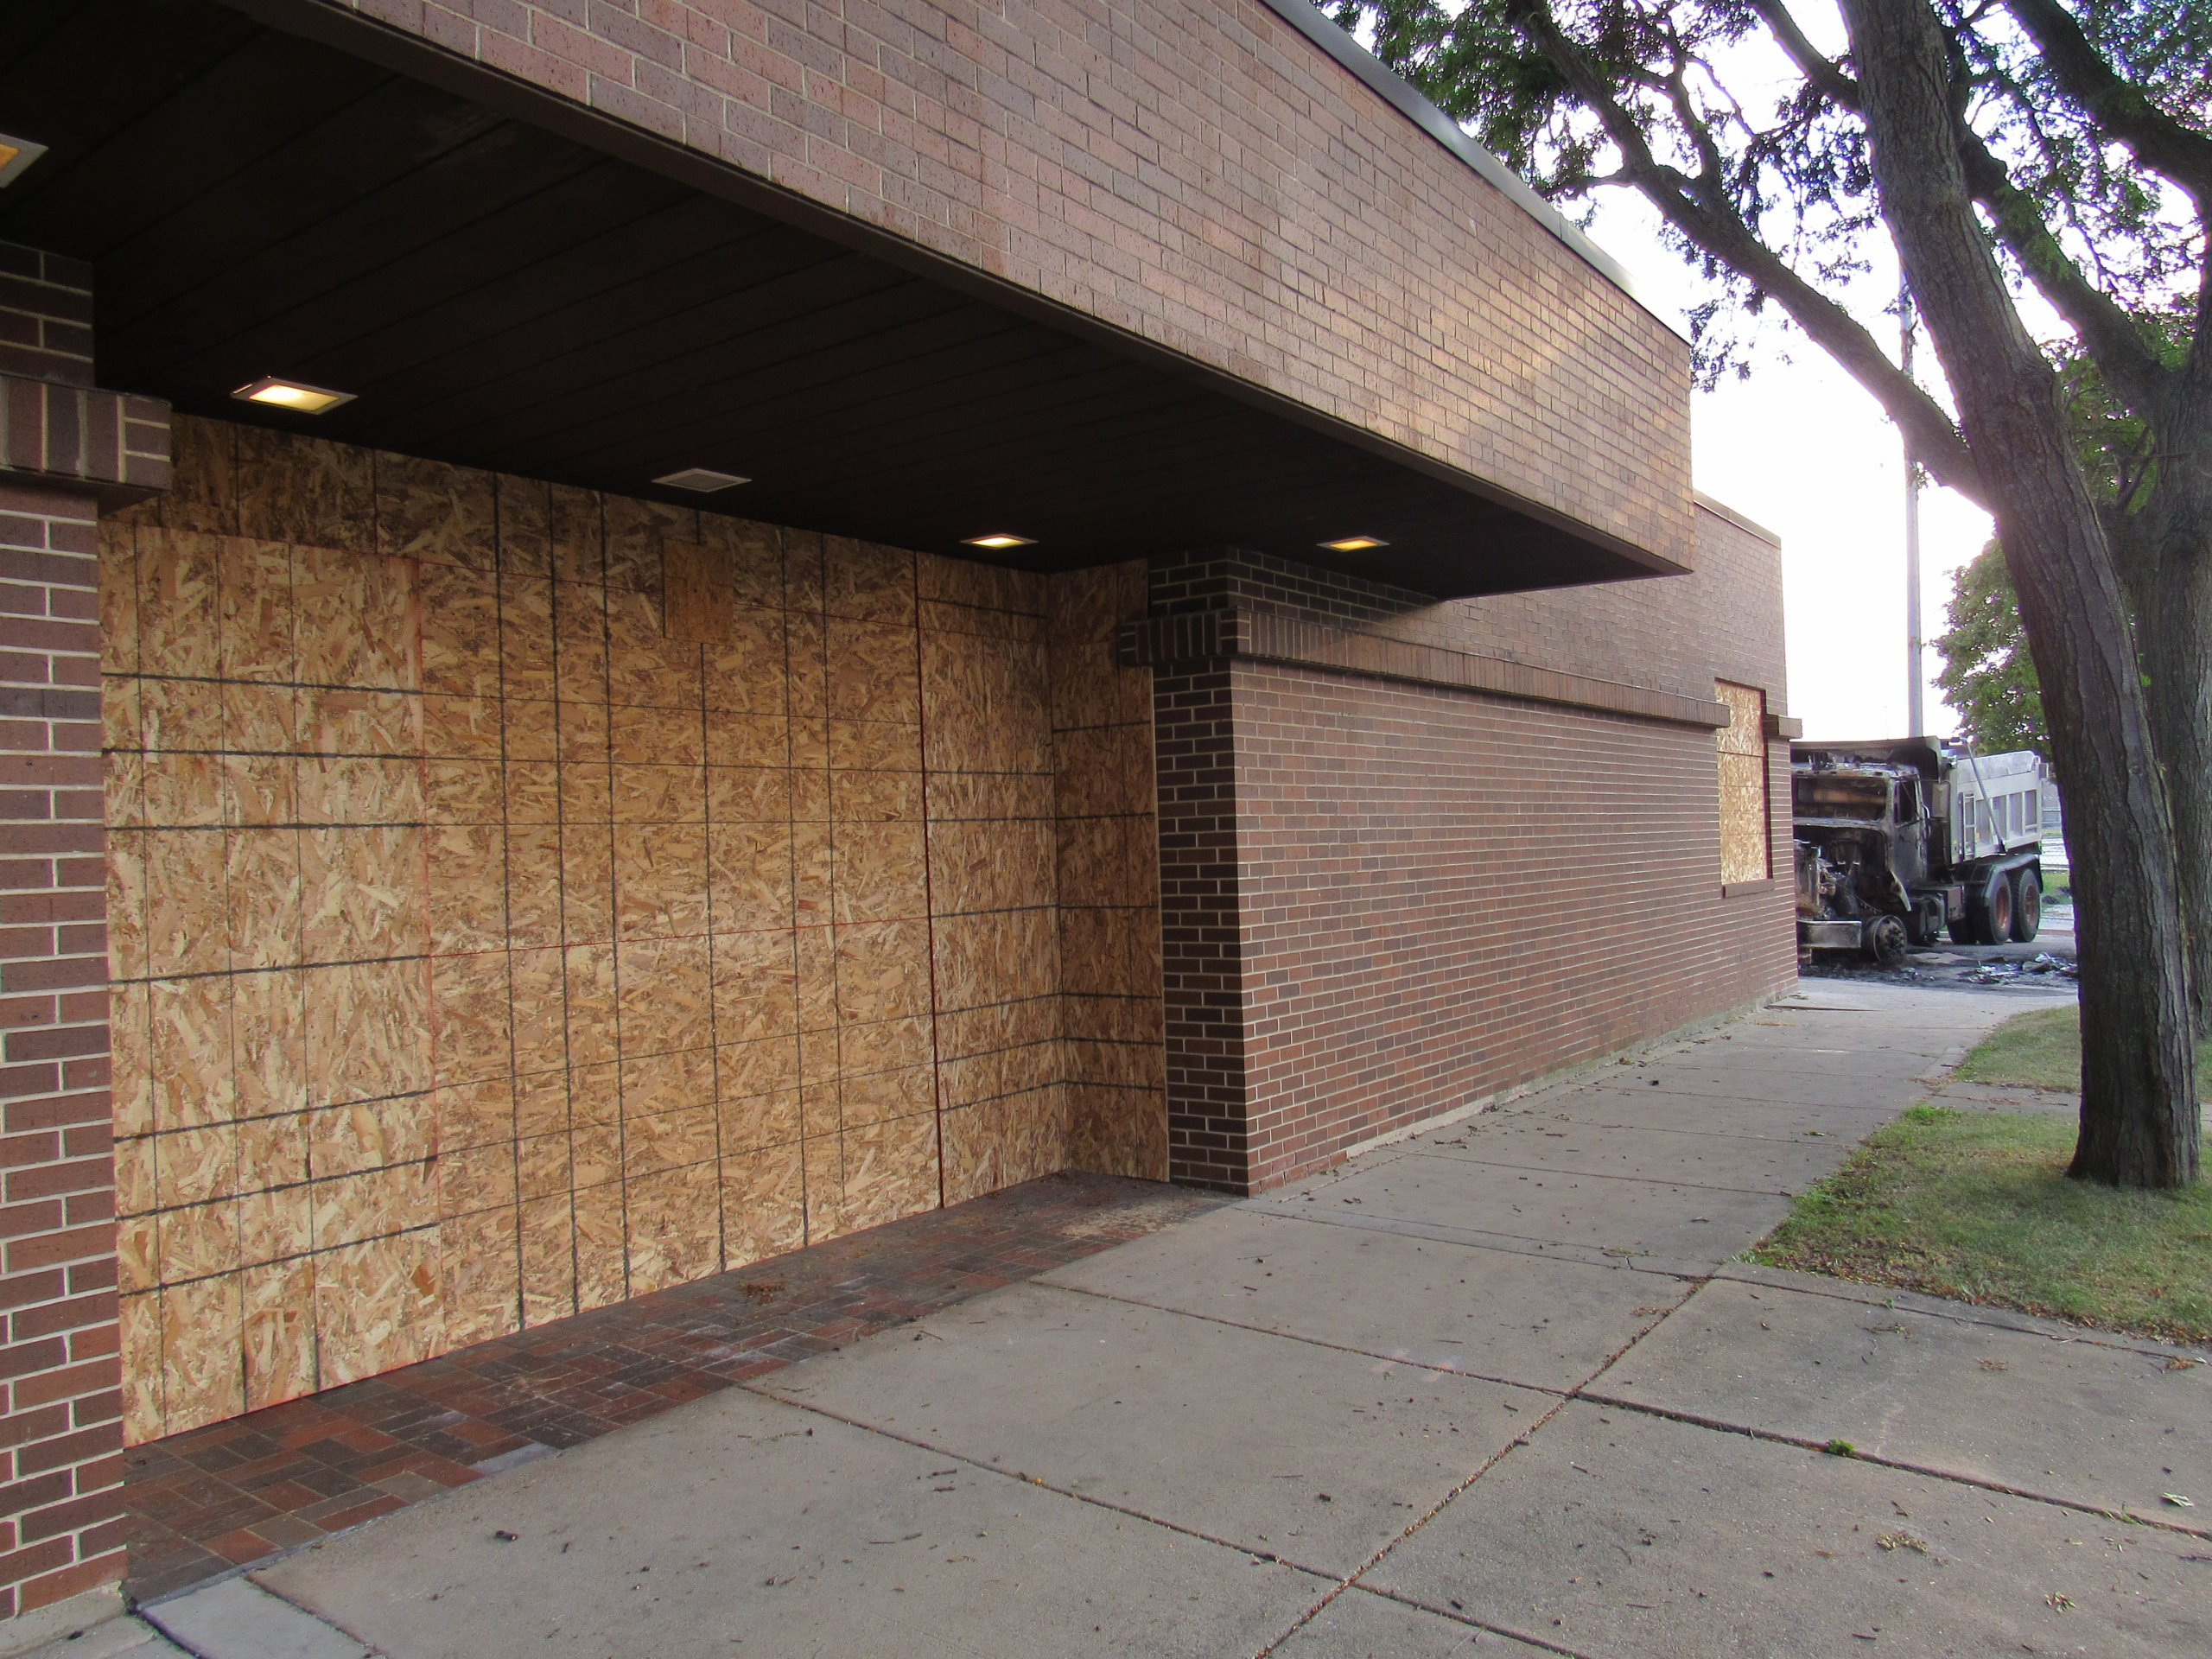 Businesses boarded up their windows and doors either after already having been damage, or to prevent damage. (Photo by Isiah Holmes)